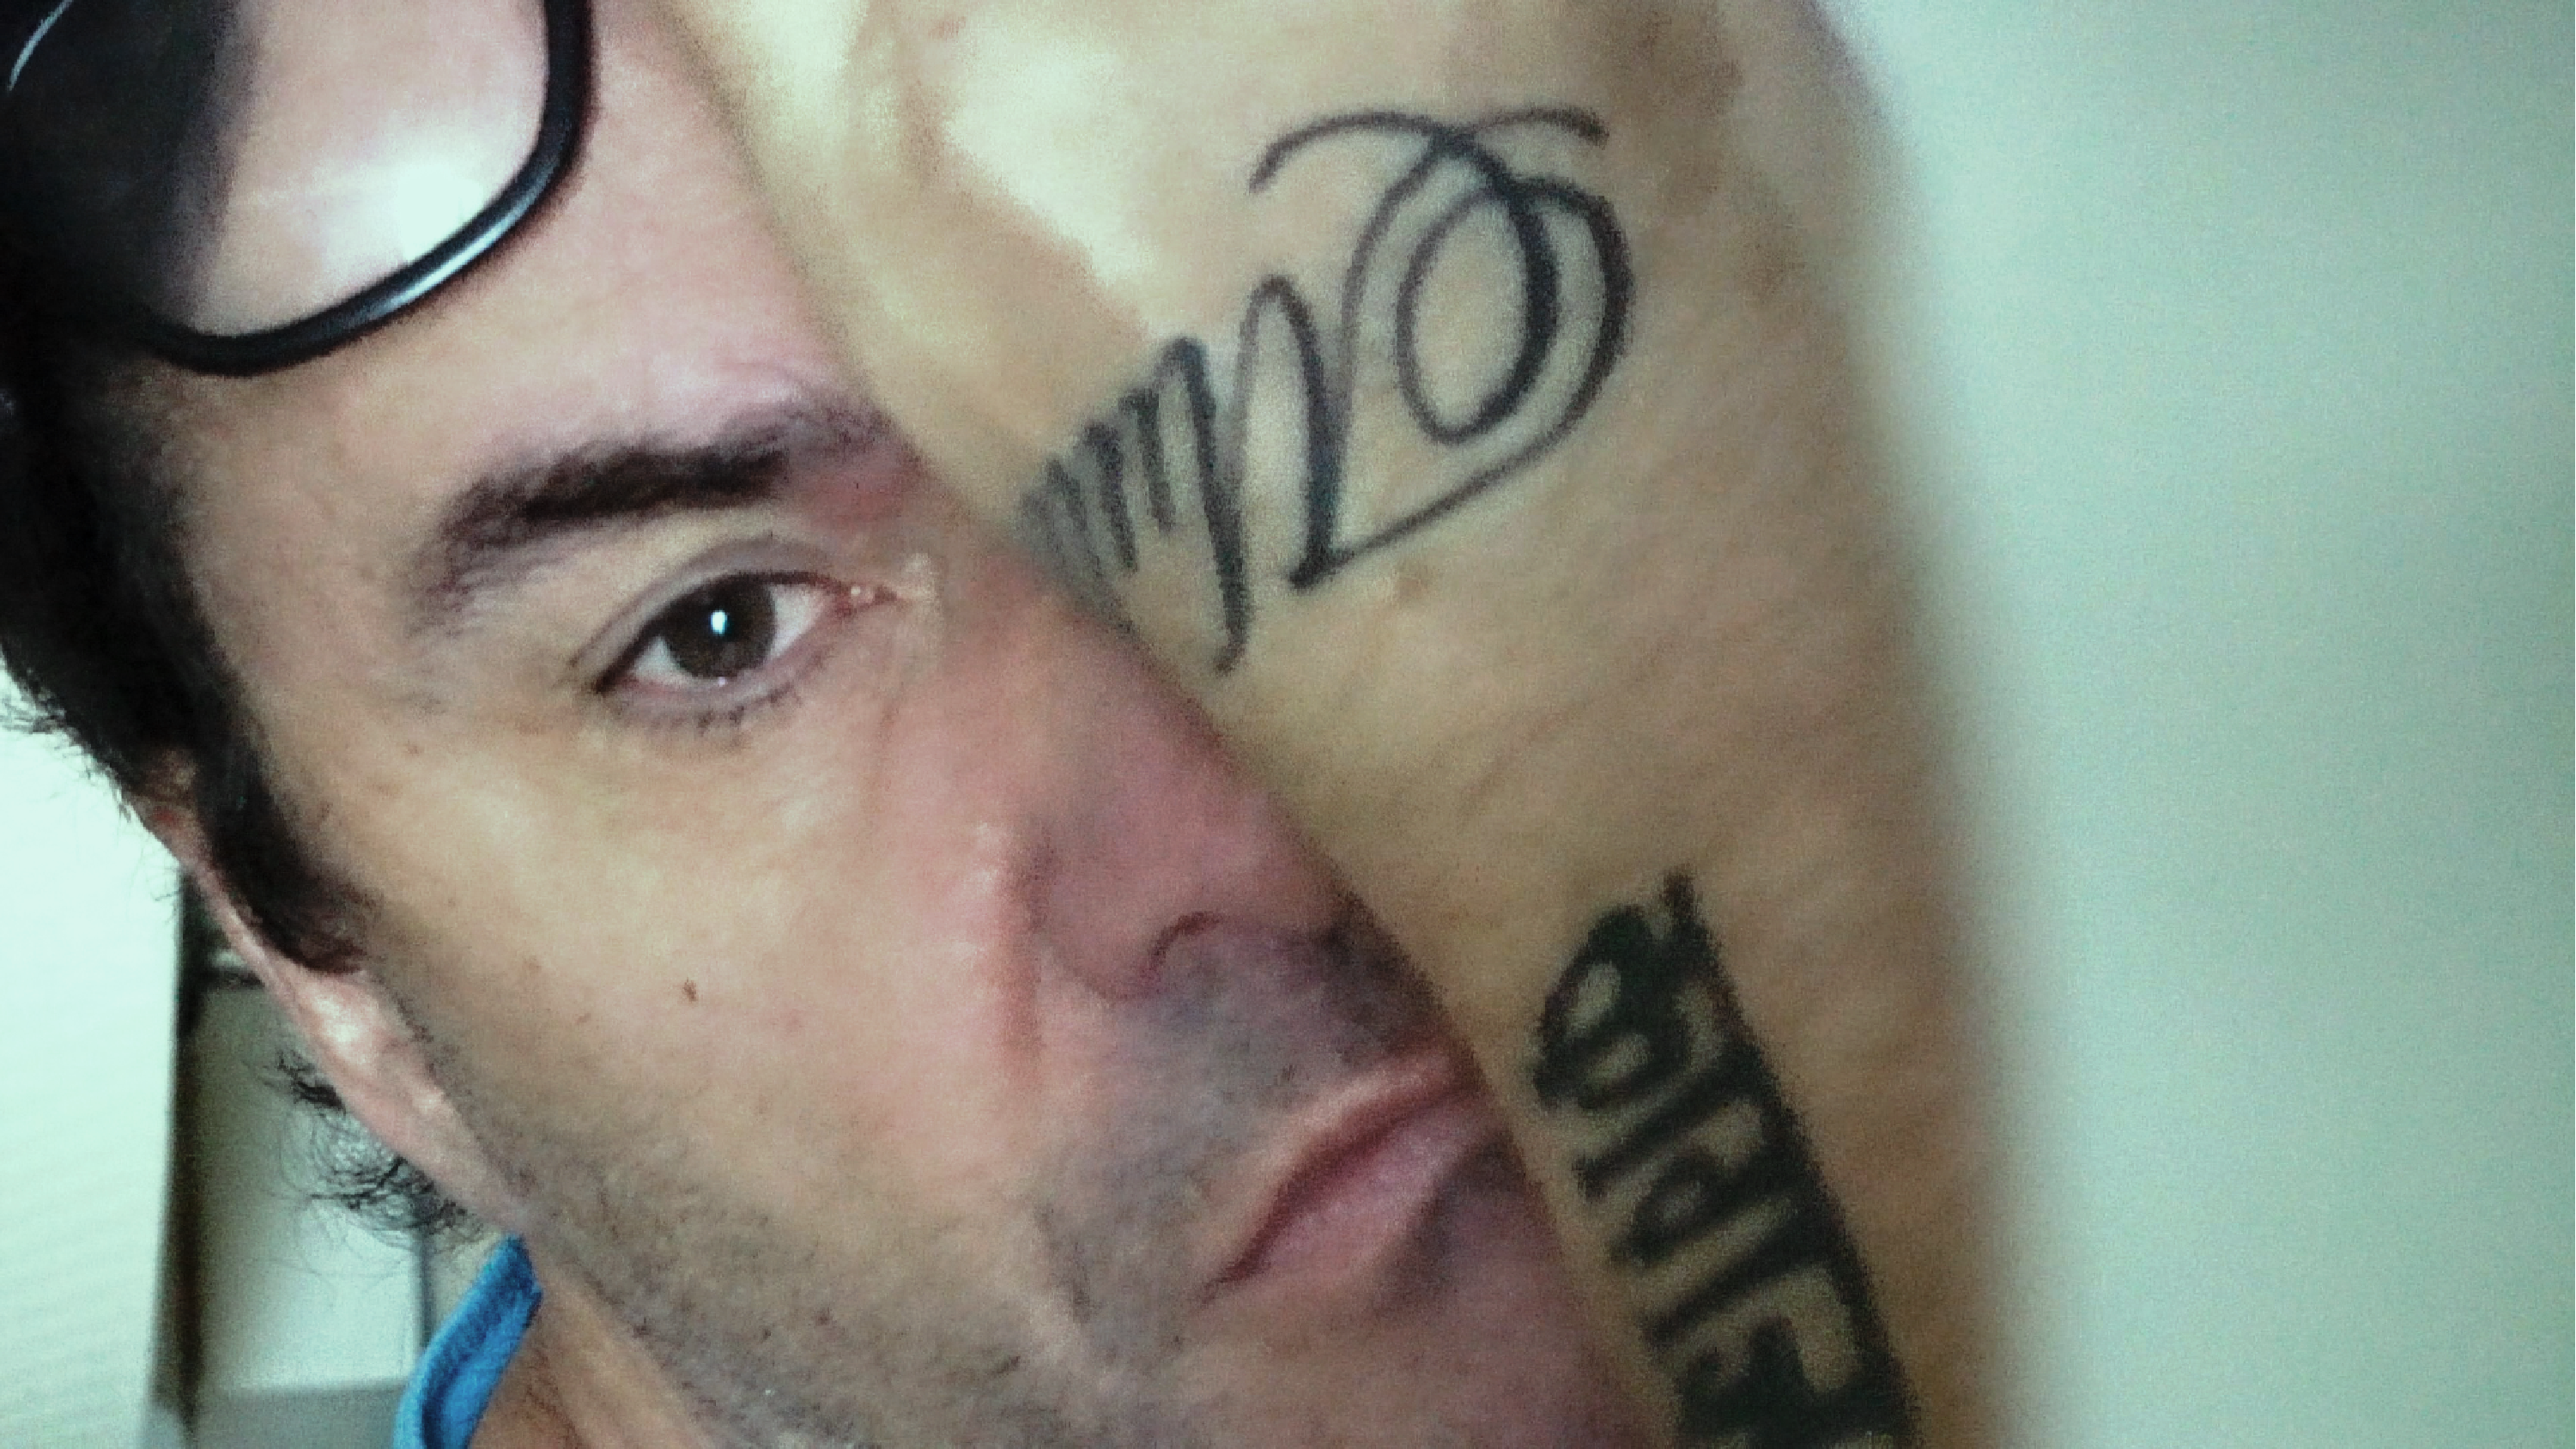 A man's face is half-obscured by his arm. The man has glasses perched on top of his head, and tattoos on the arm covering his face.